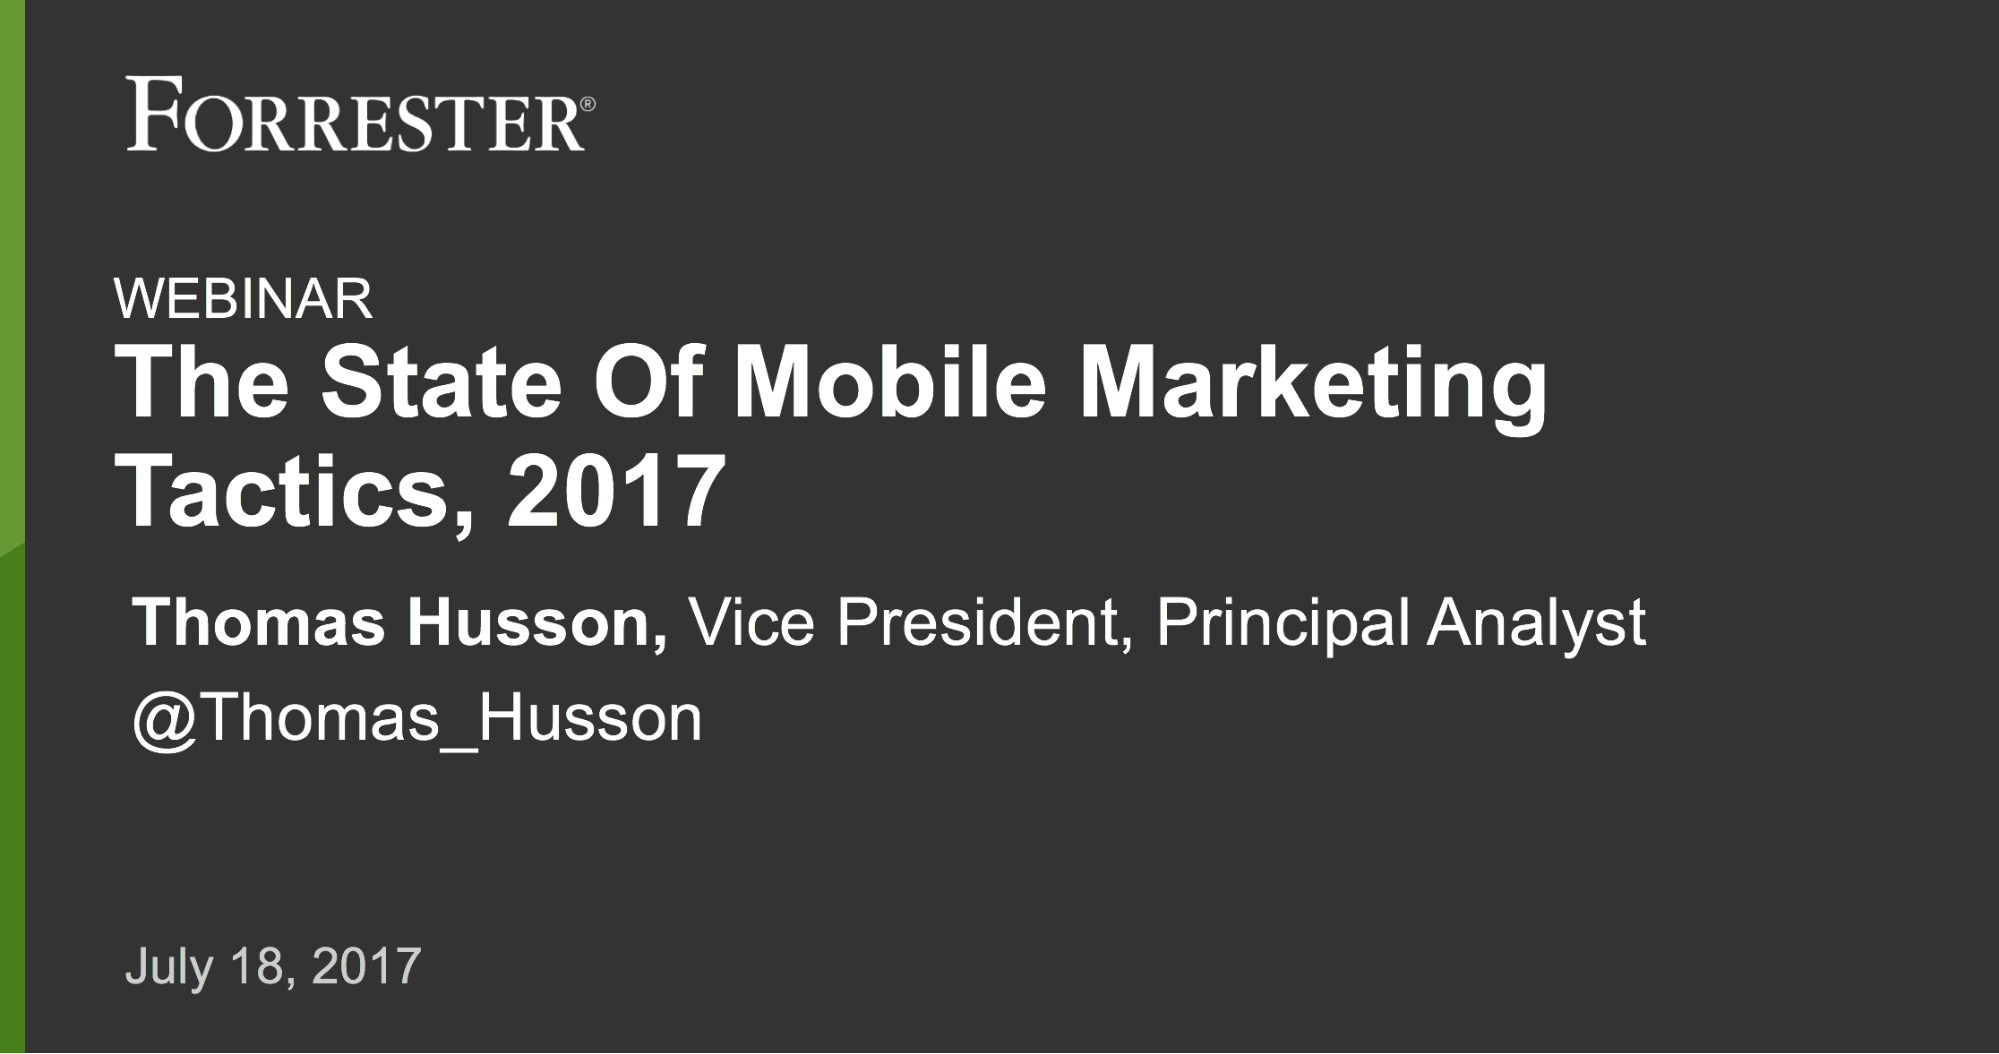 forrester-the-state-of-mobile-marketer-tactics-2017-webinar-cover-urban-airship